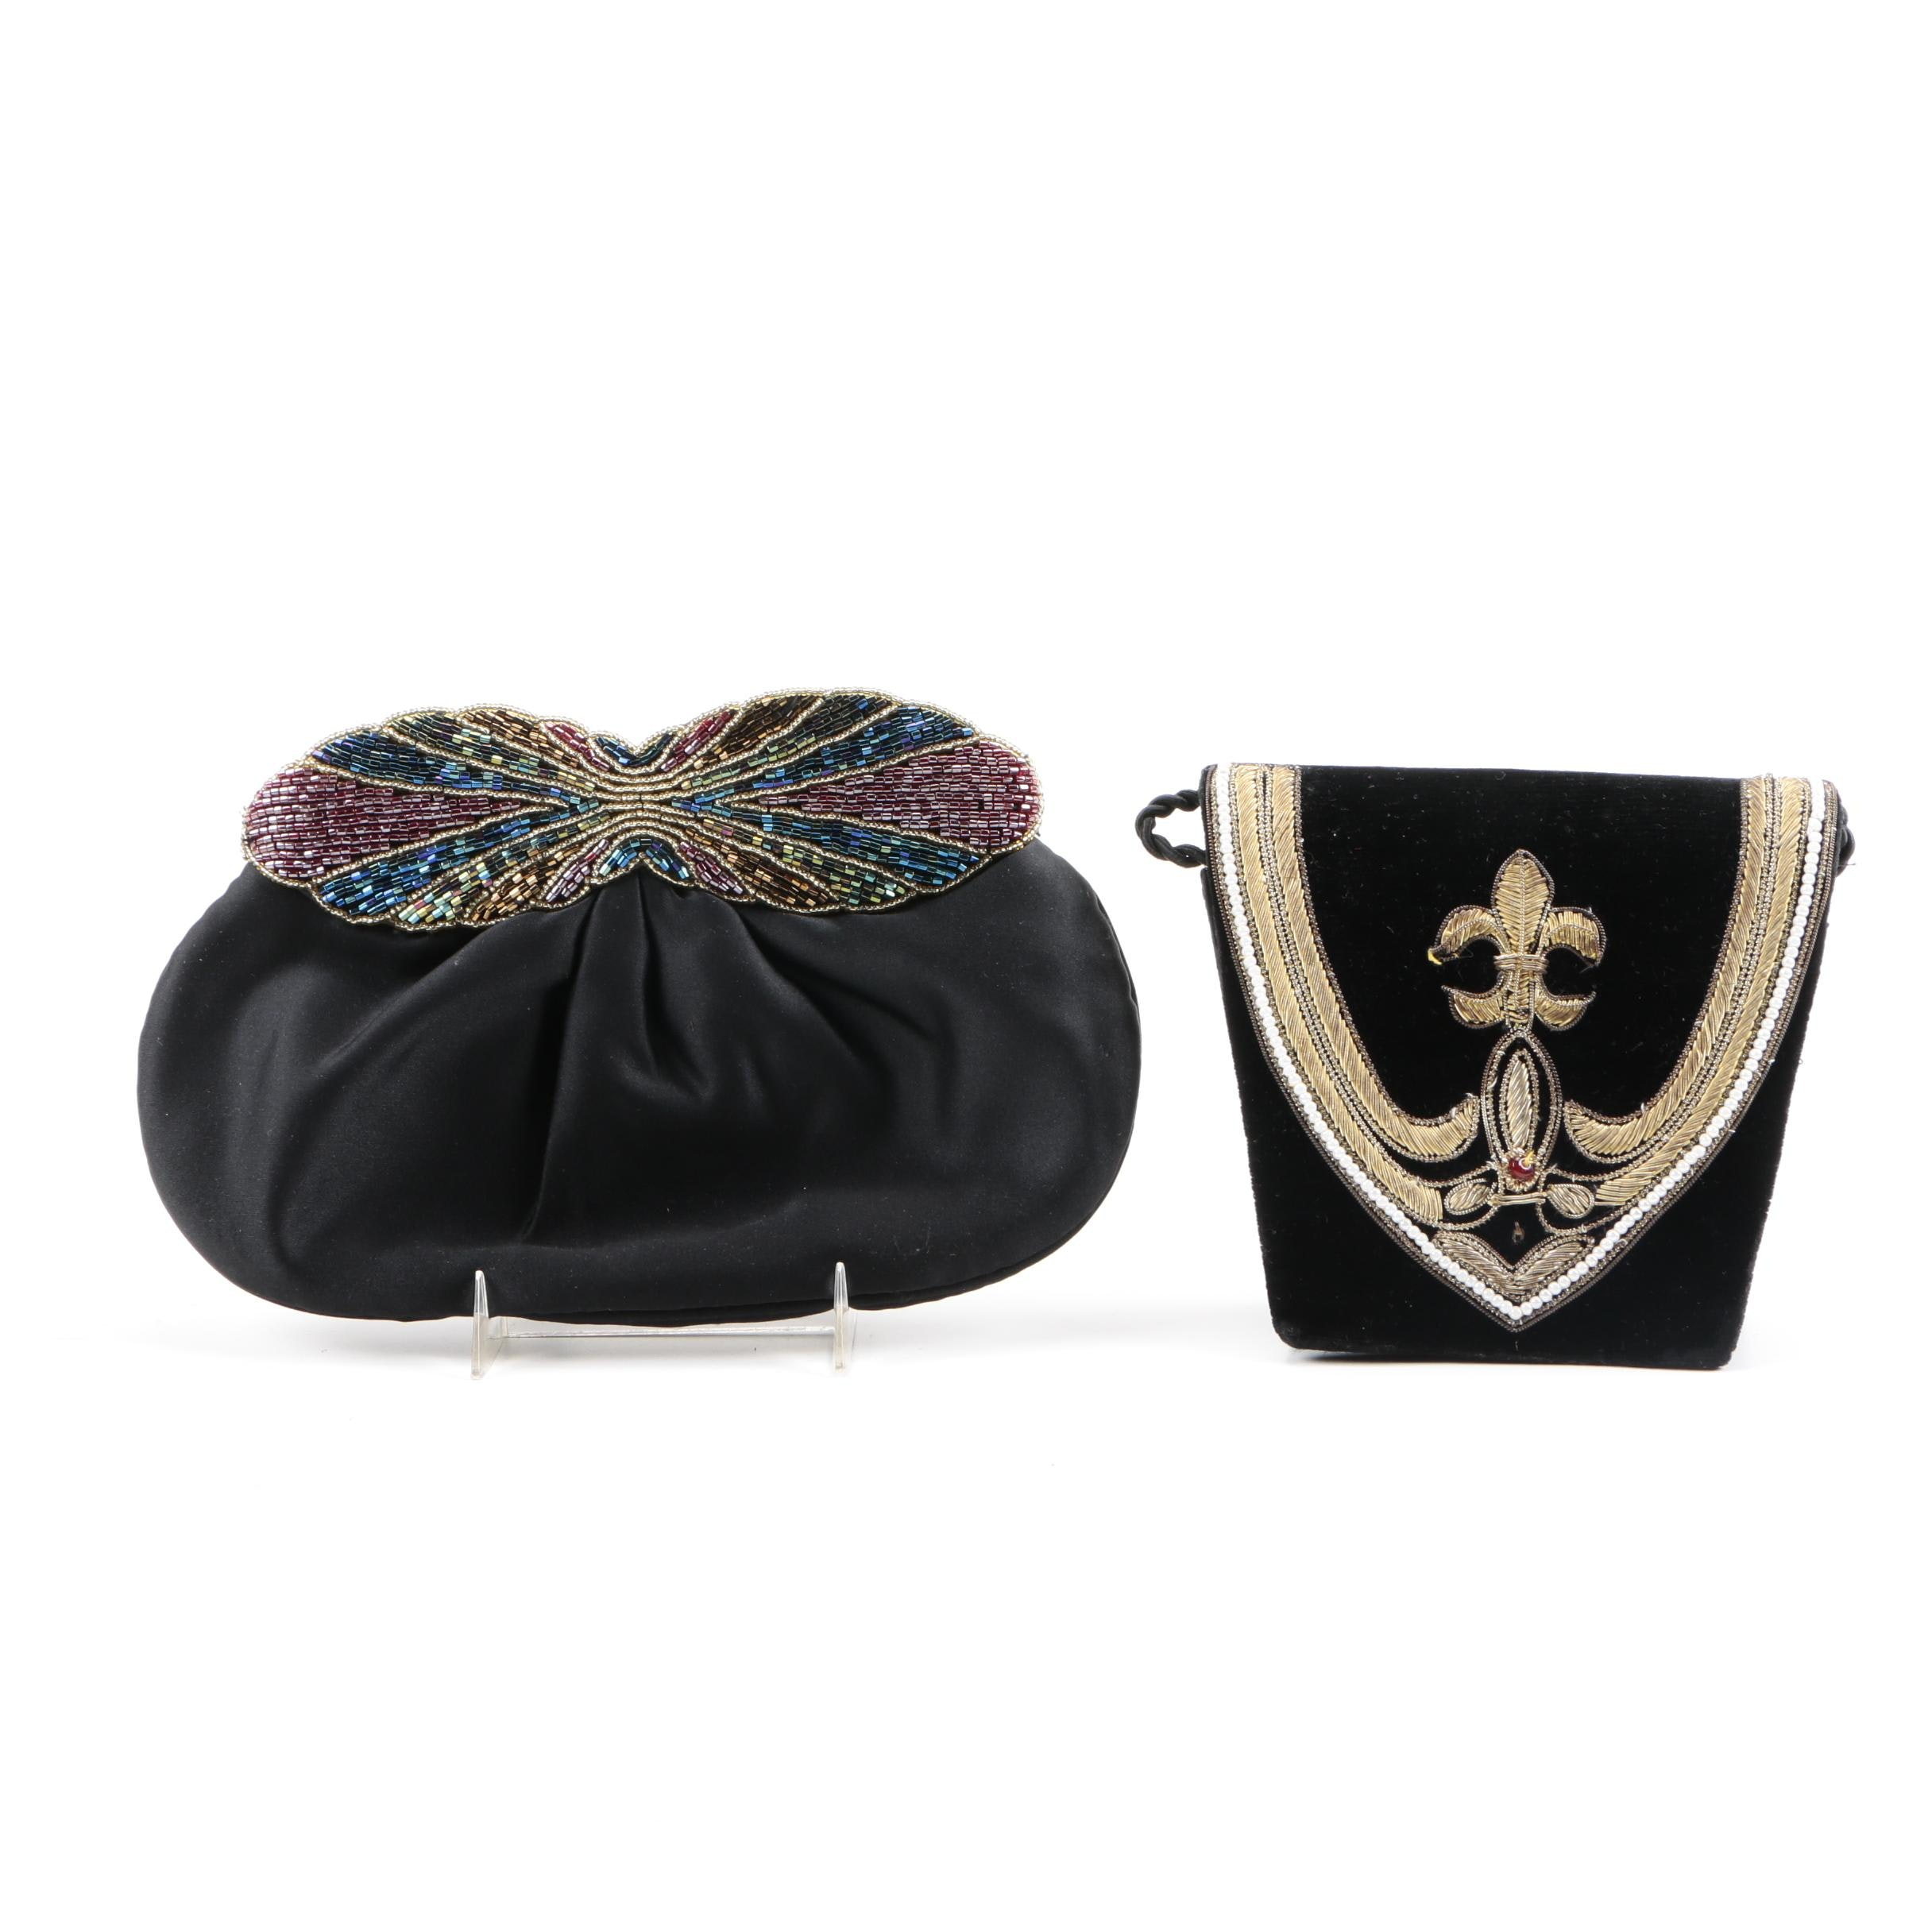 Pair of Black Beaded Evening Bags